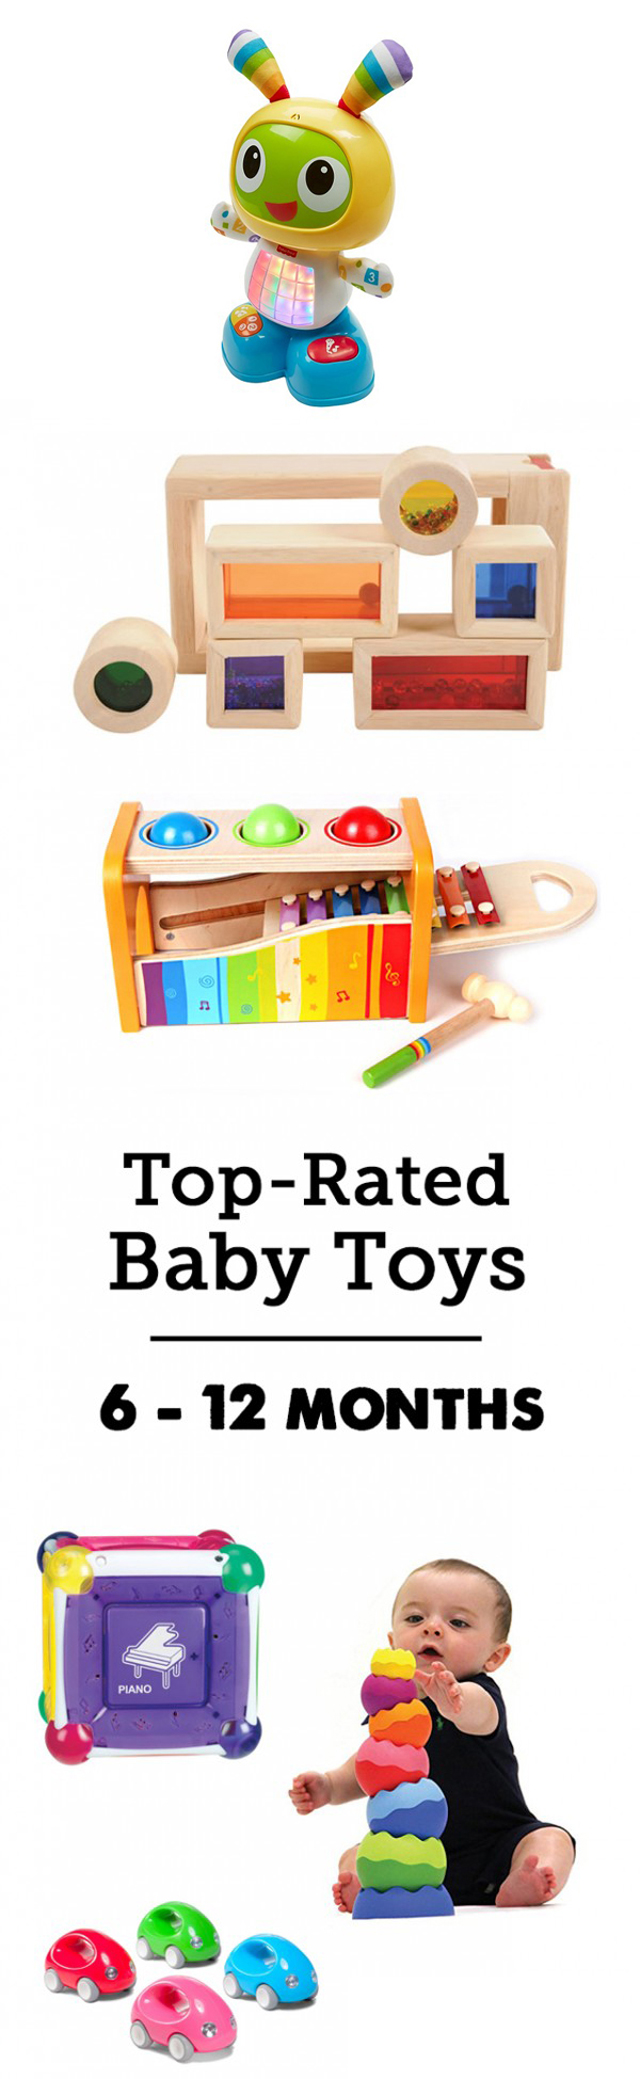 MPMK Gift Guide Glimpse: Best Gifts for 6 – 12 Month Olds ...